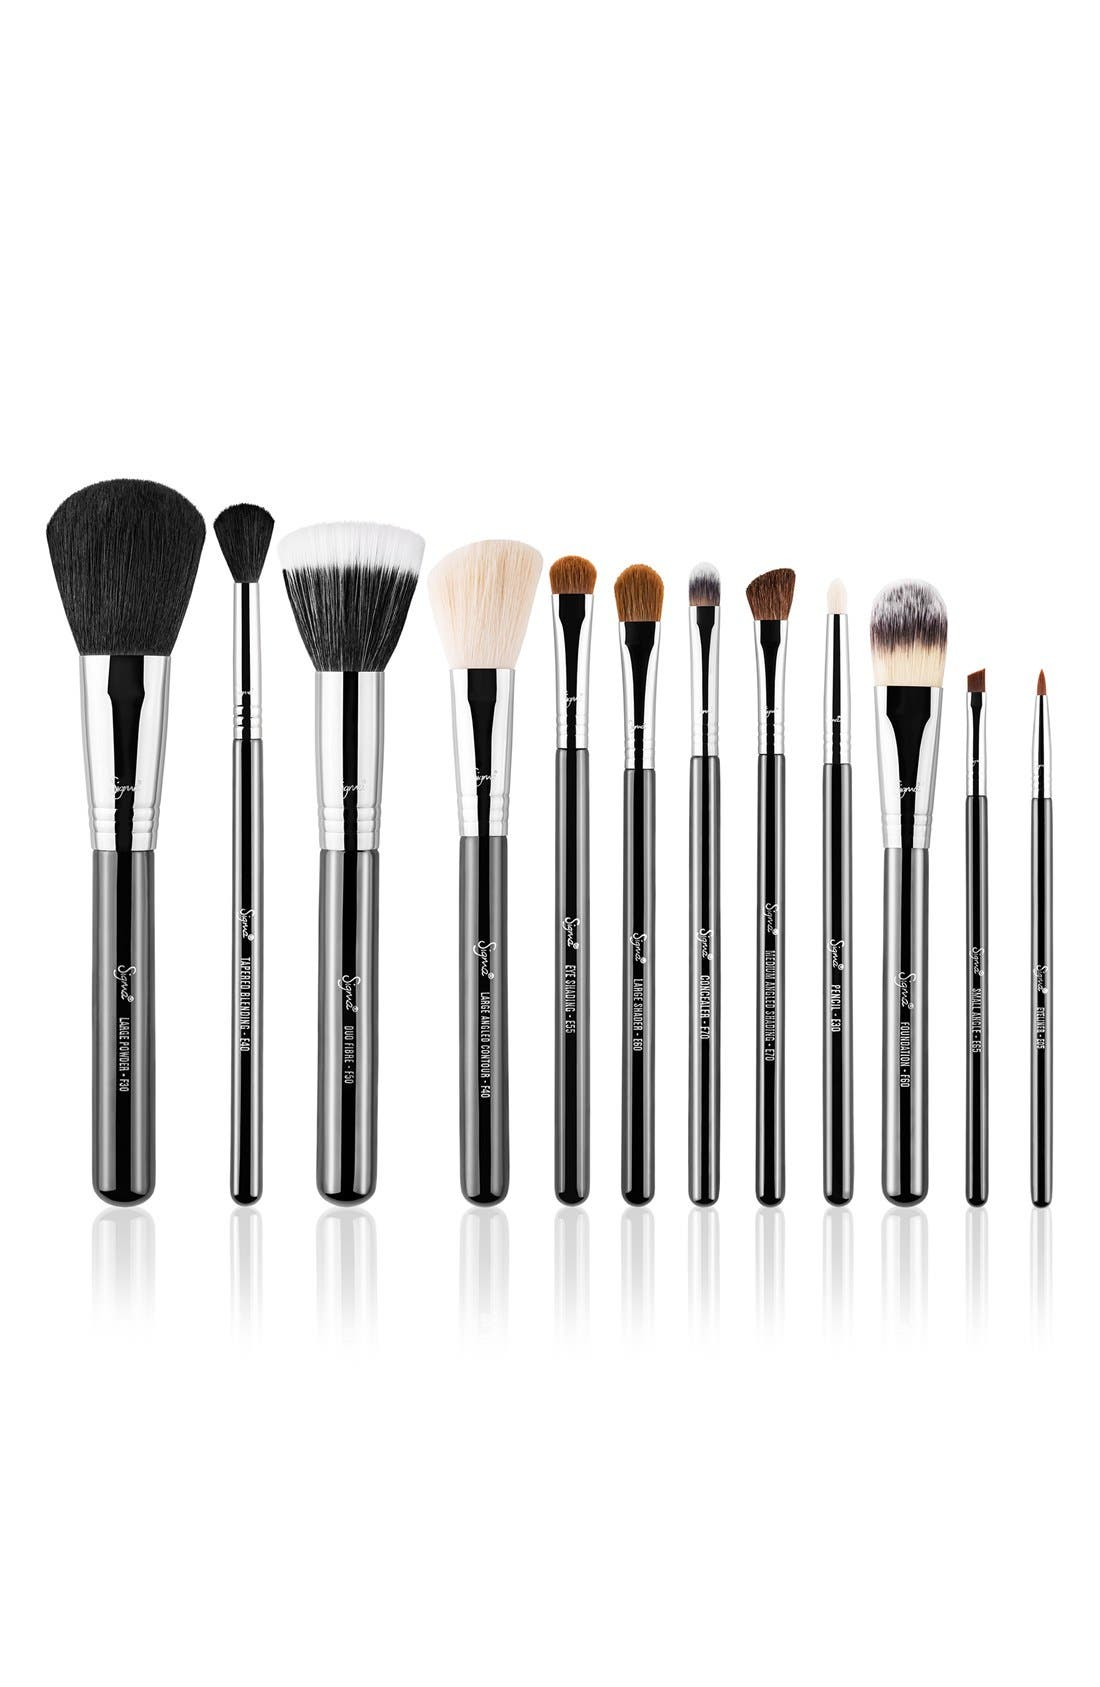 Sigma Beauty 'Essential' Kit ($213 Value)